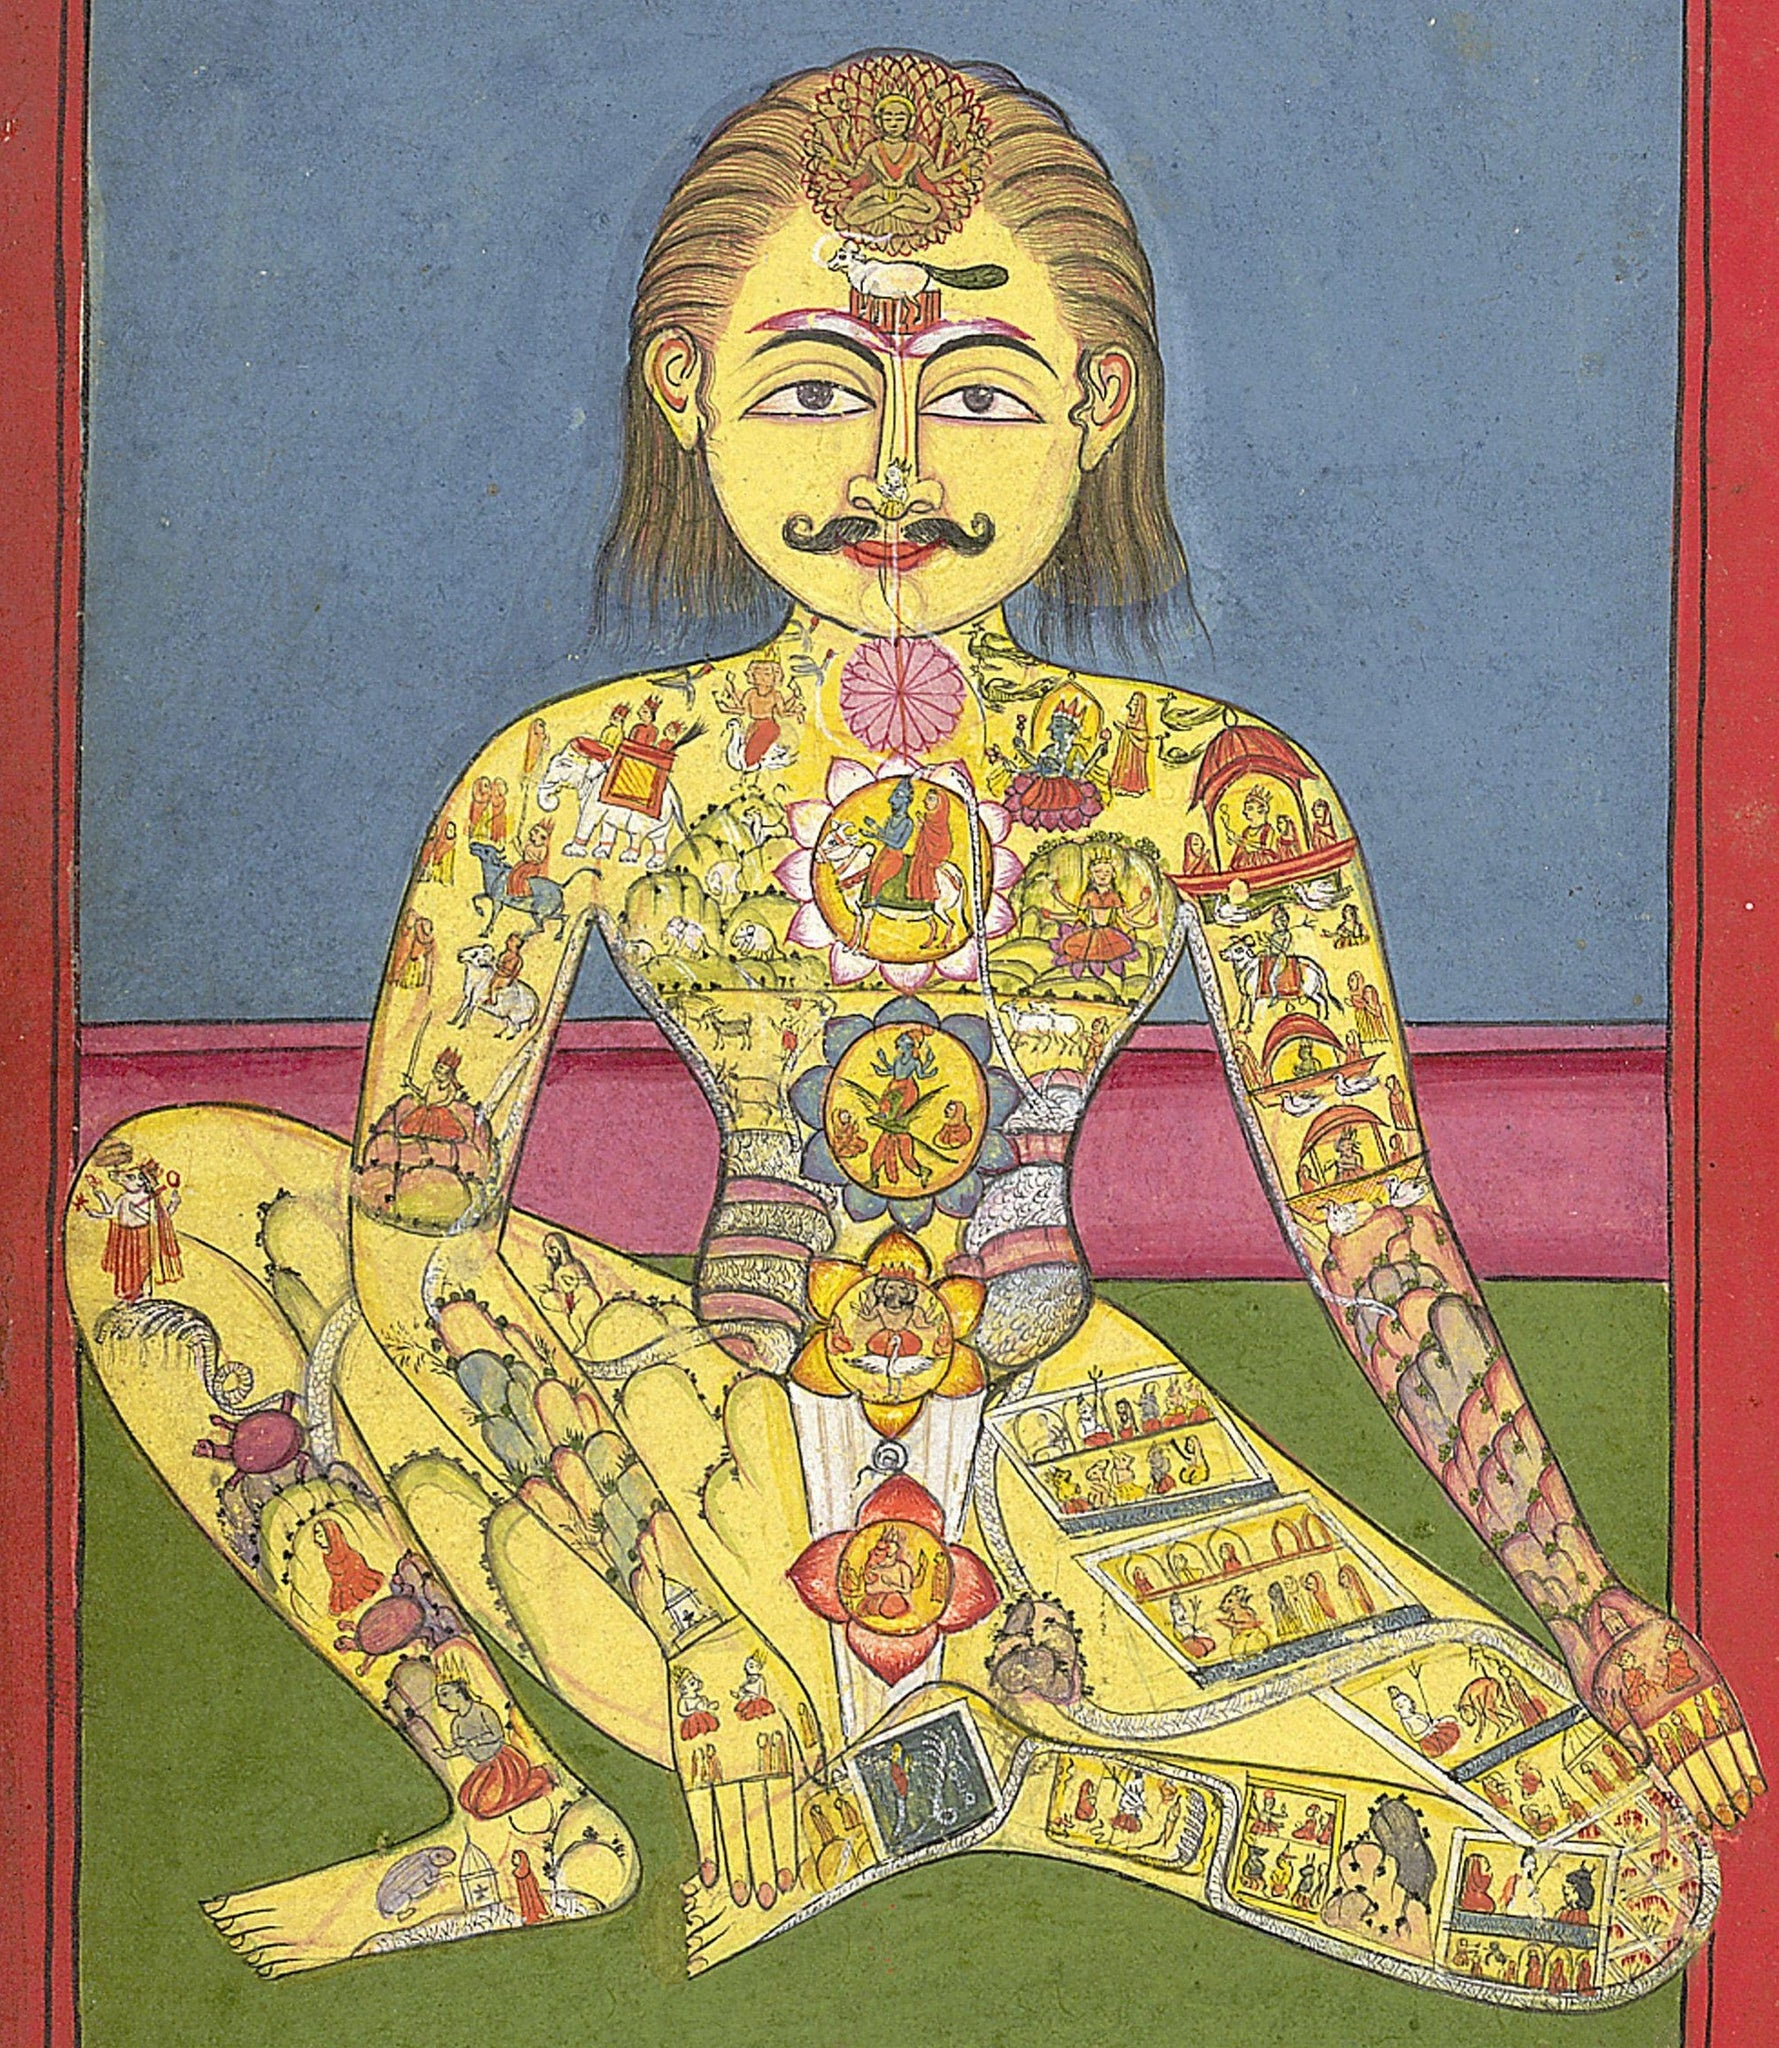 Photo 4 courtesy: Wiki Commons, Sapta Chakra, from a 118-page Yoga manuscript in the Braj Bhasha language, 1899.